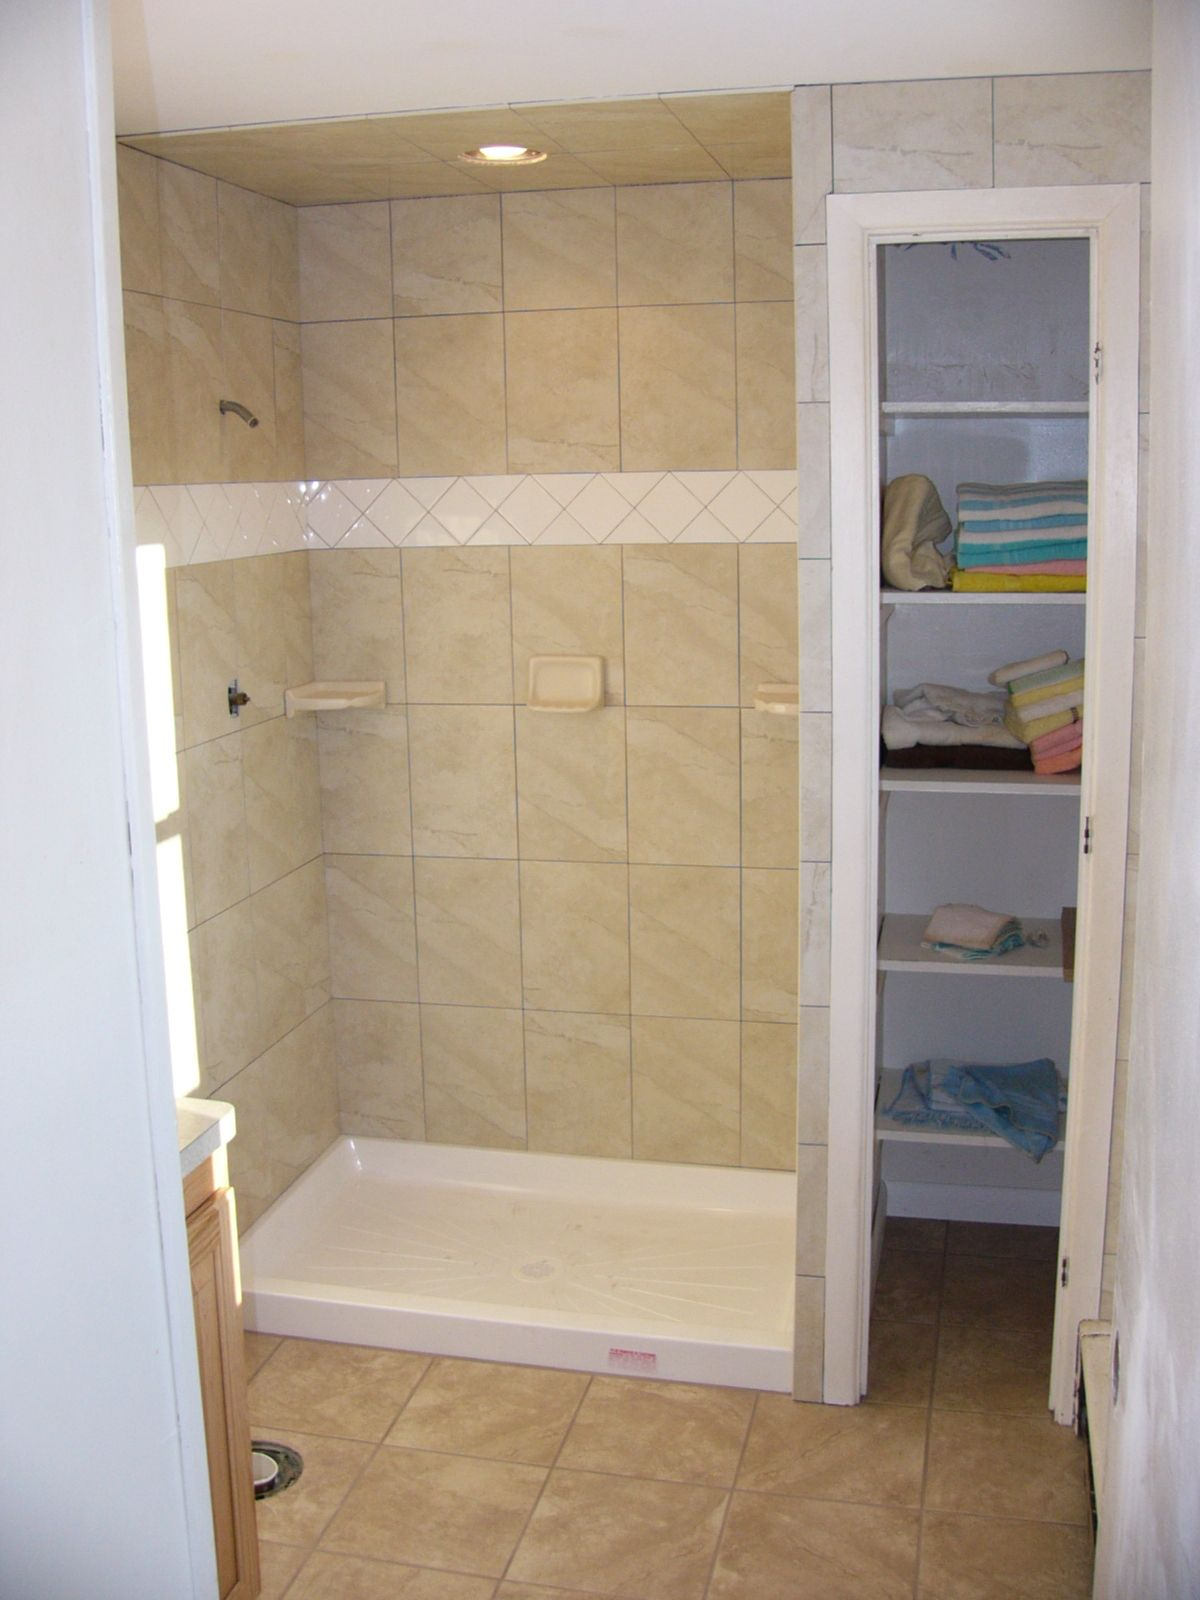 Shower Surrounds Wallpaper | bathroom | Pinterest | Tile showers ...